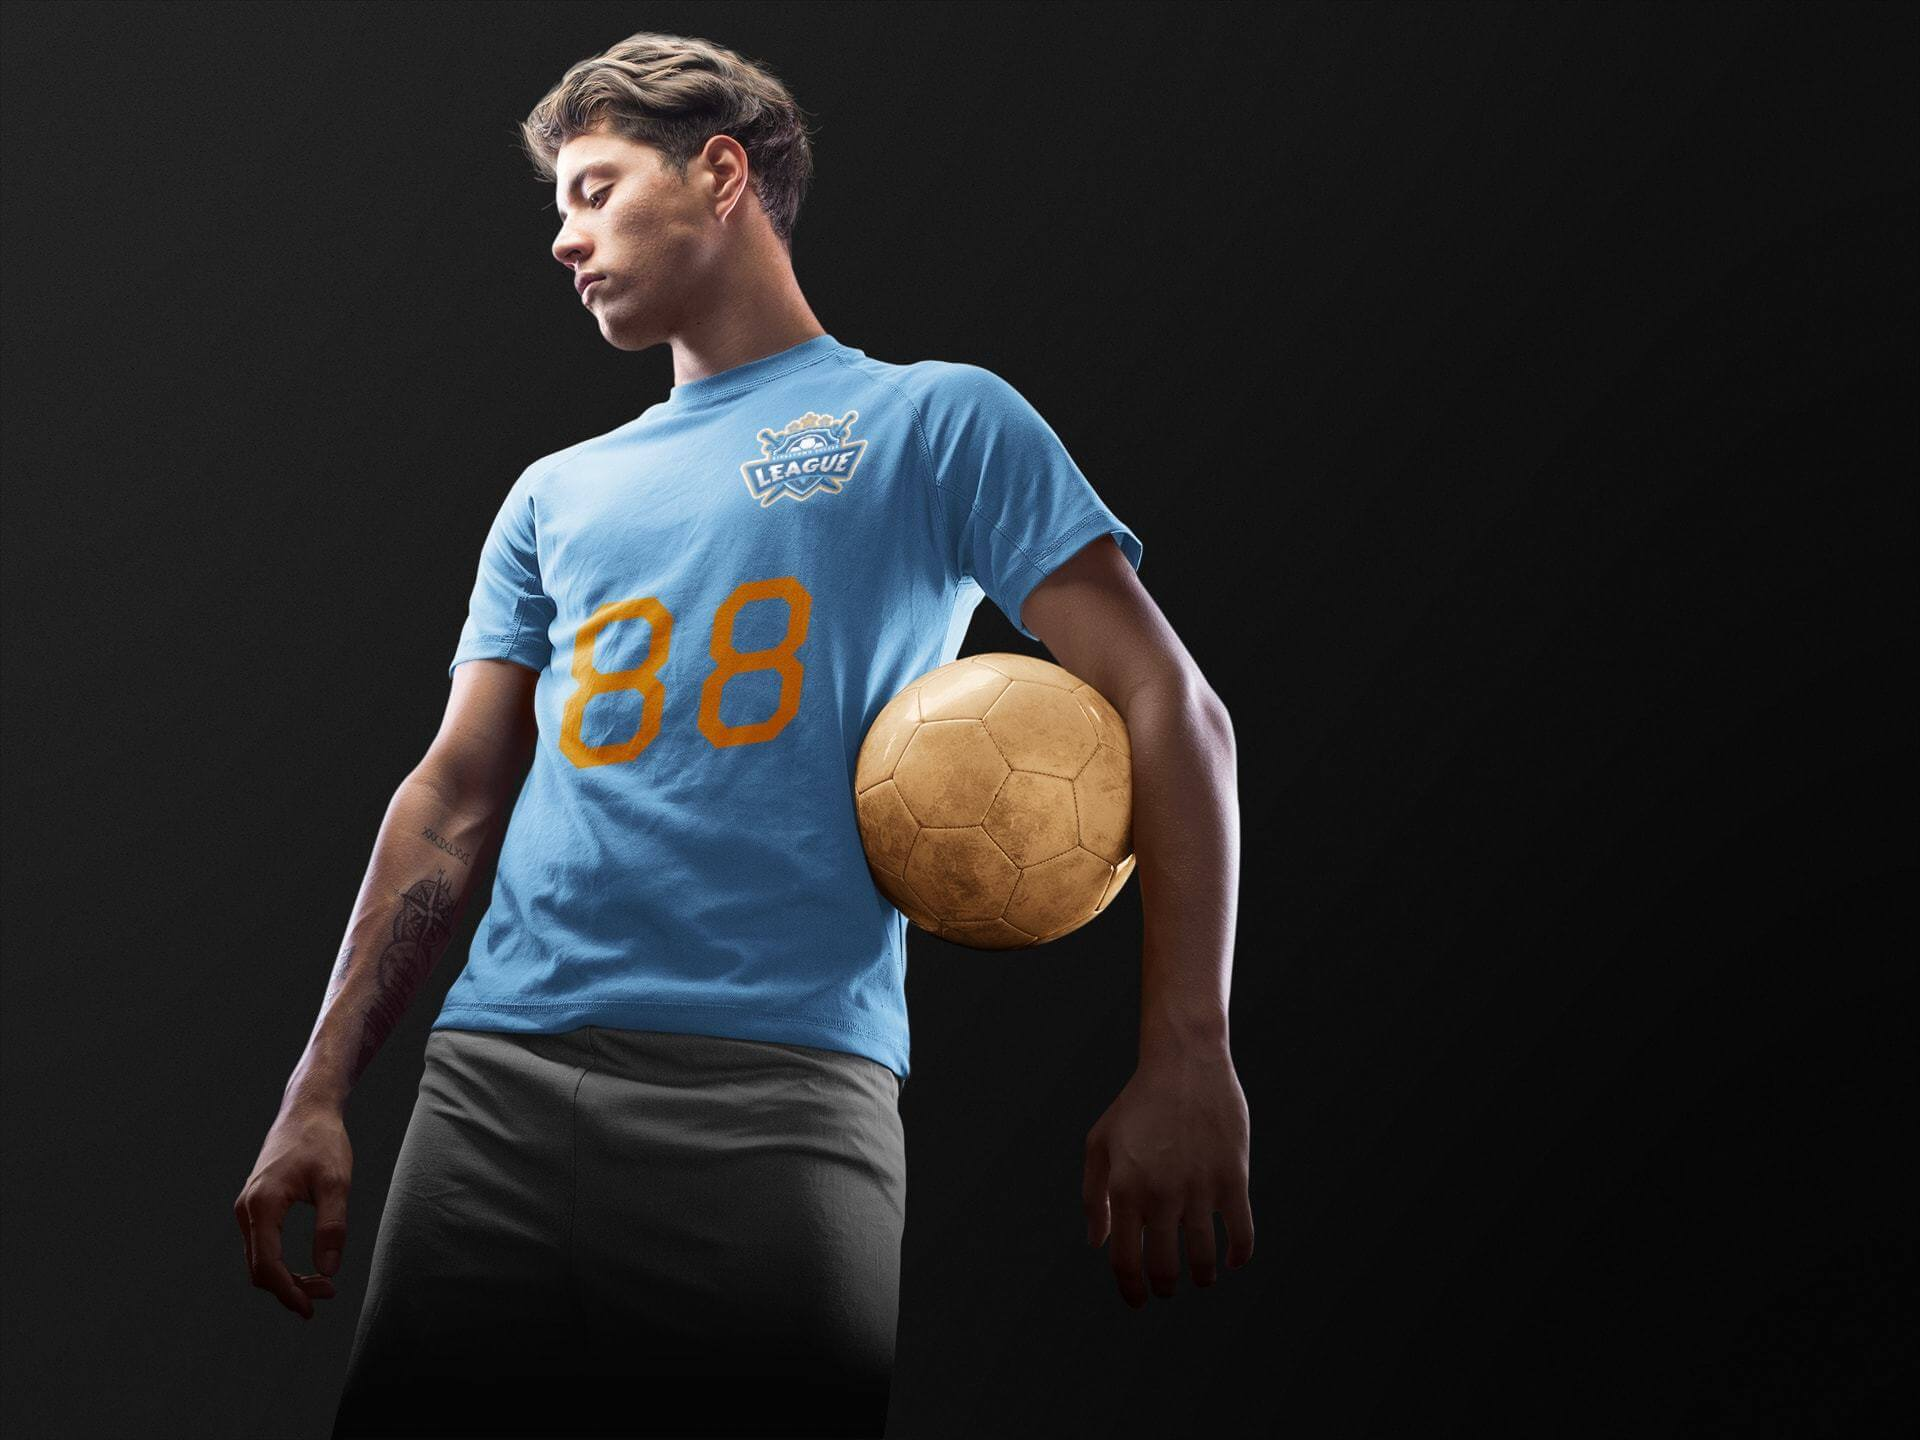 How to Design Custom Soccer Jerseys to Hype up Your Team